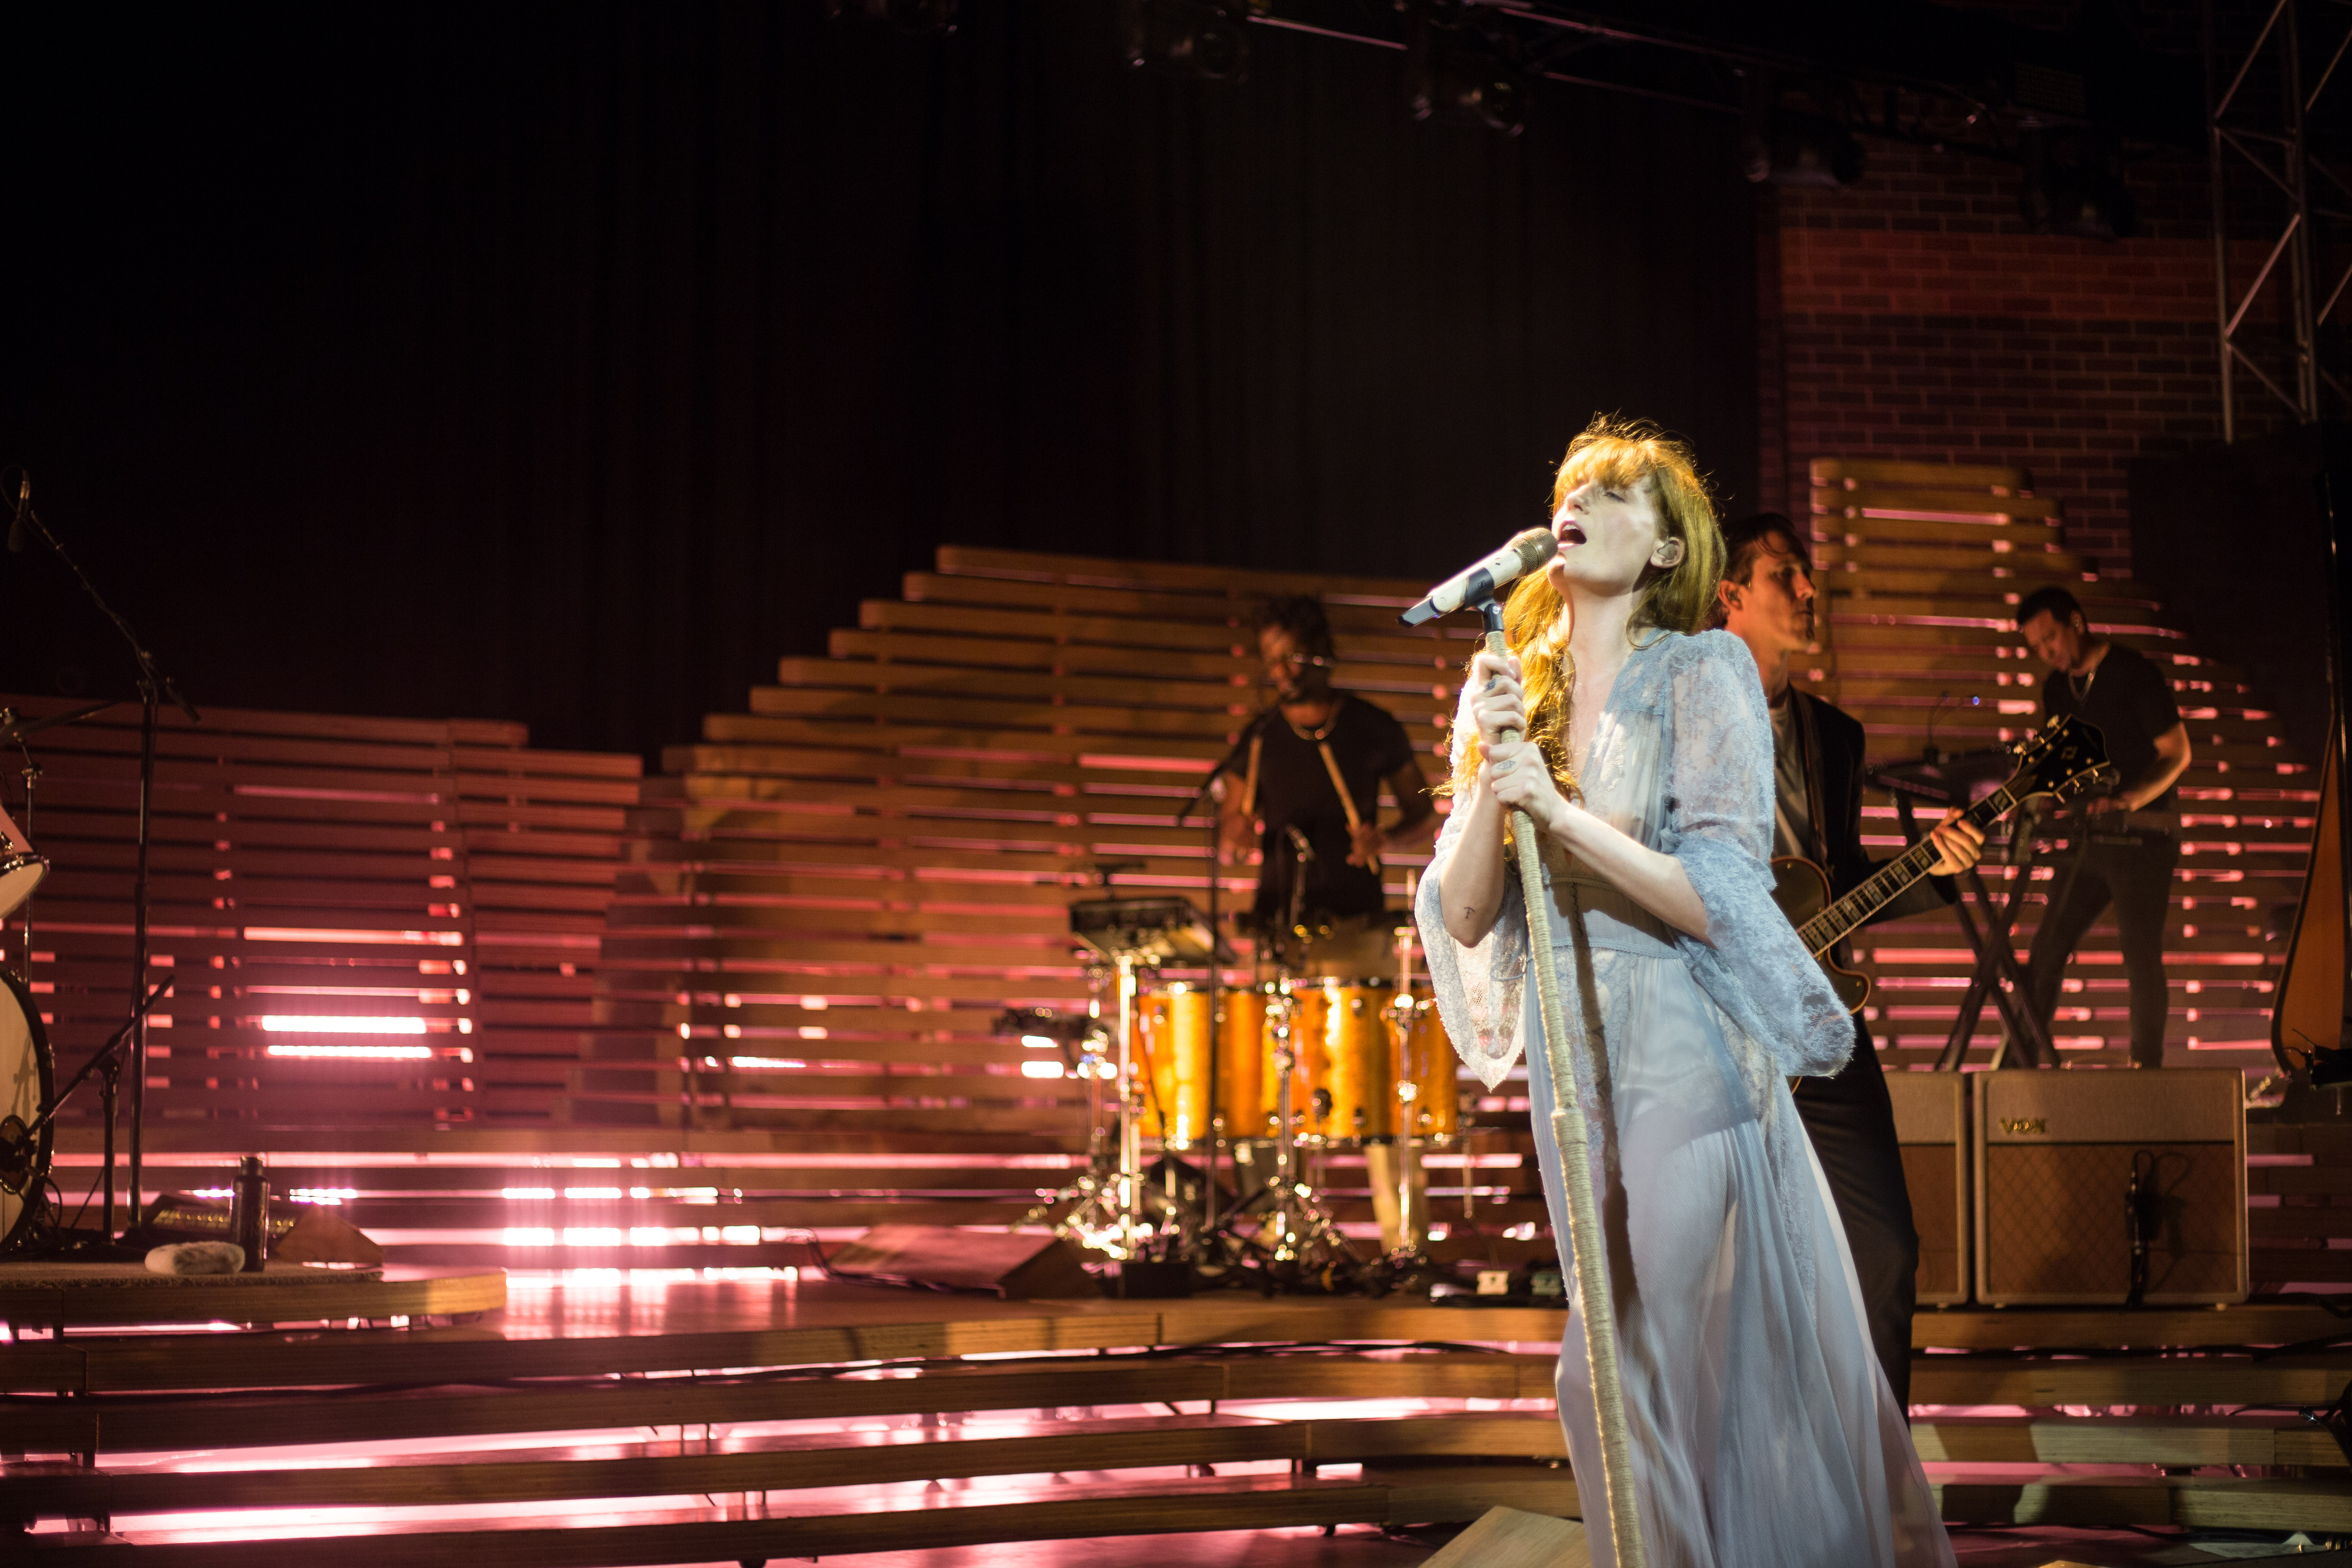 REVIEW: FLORENCE & THE MACHINE